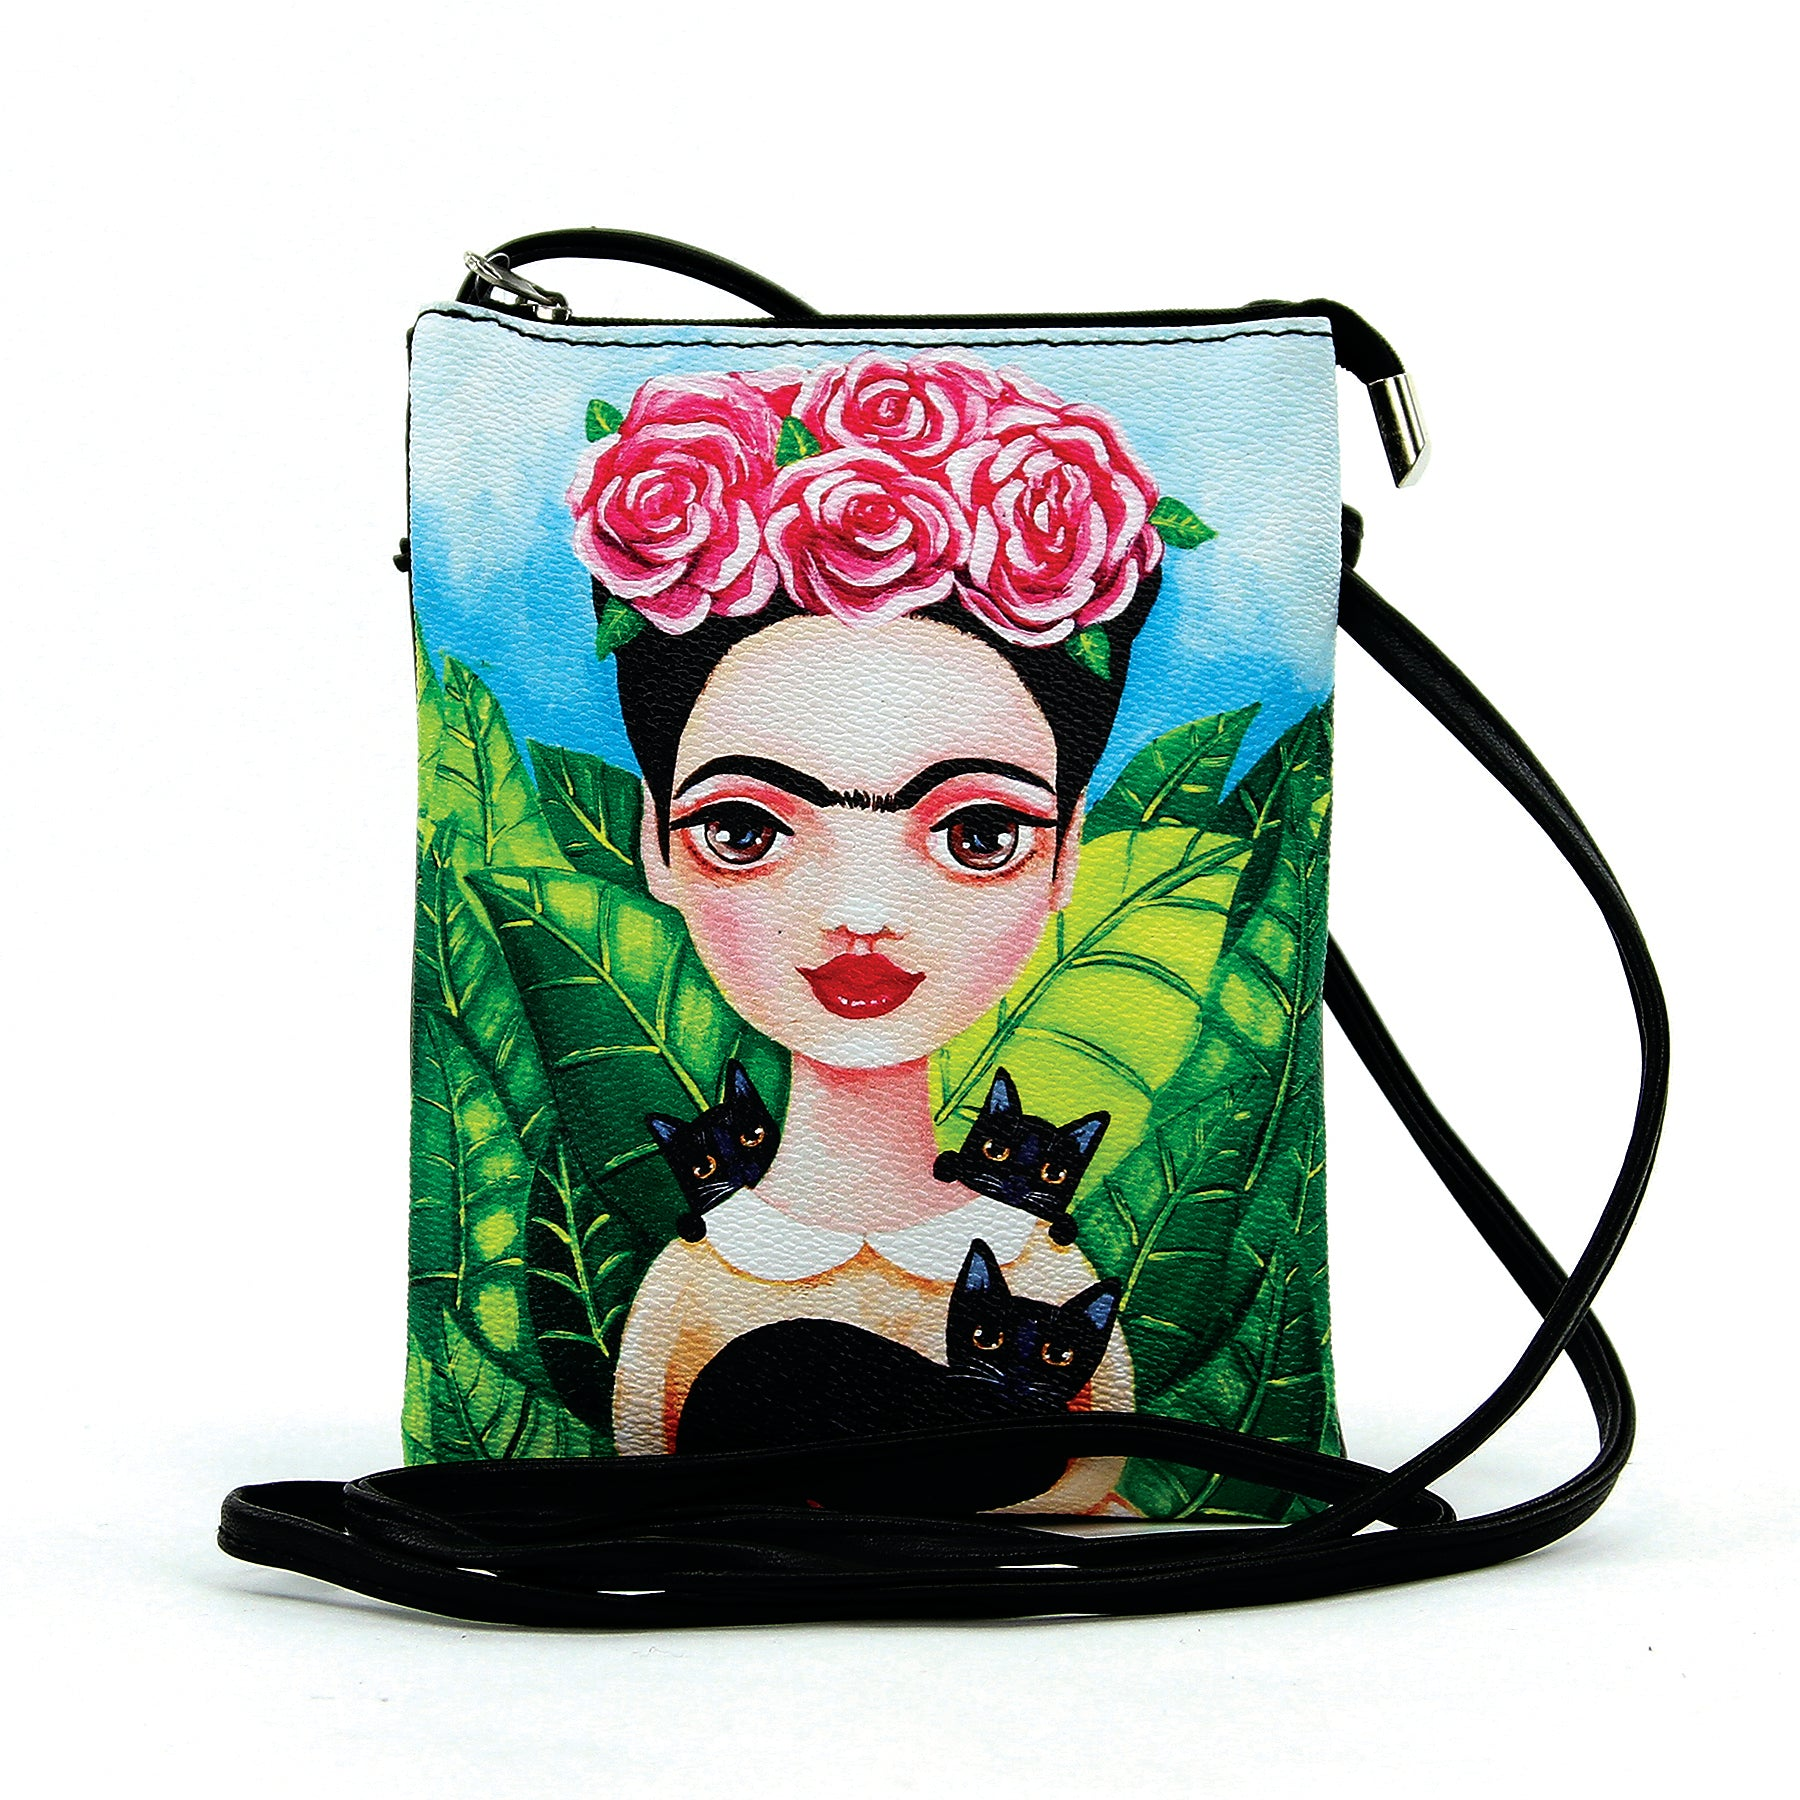 Unibrow Girl with Black Cats Crossbody Bag in Vinyl Material front view